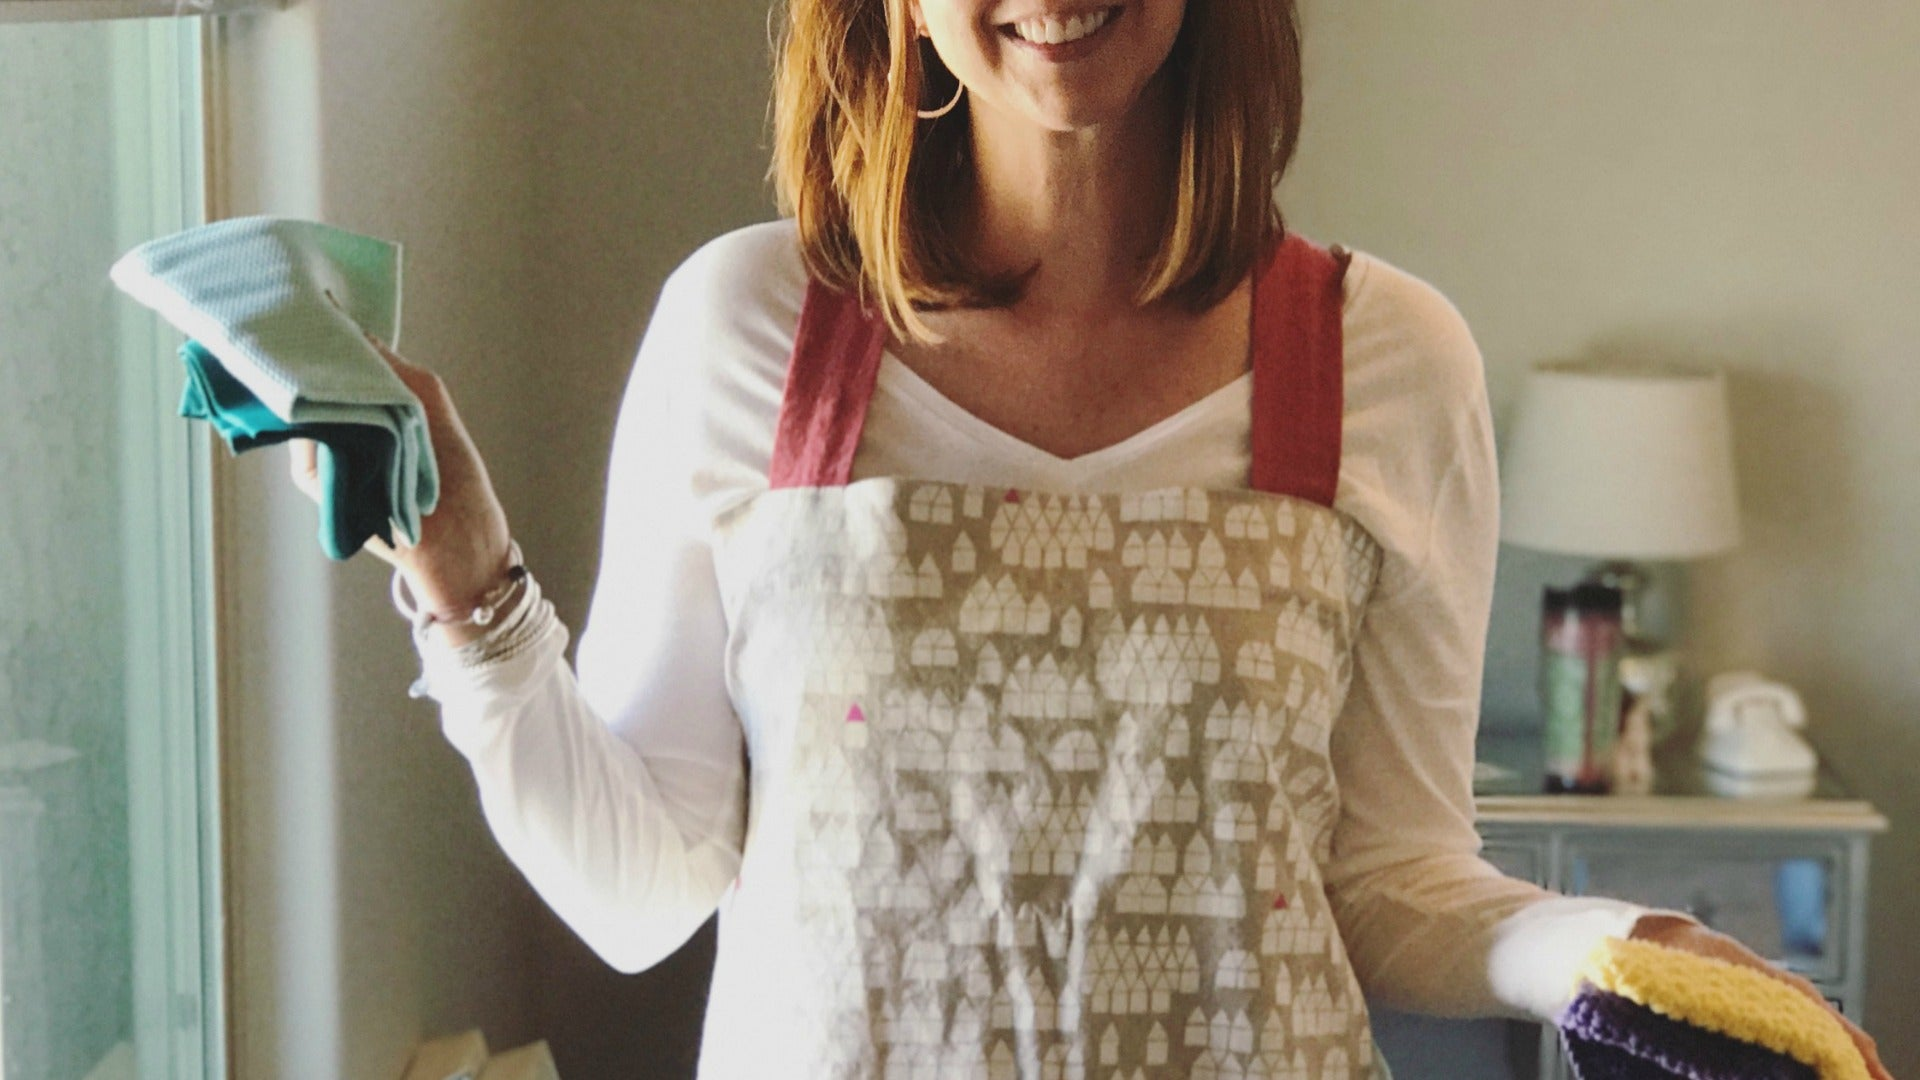 Linen pinafore smock pastry aprons for breezy summer wear and work.  Handmade in Maine by worthygoods.